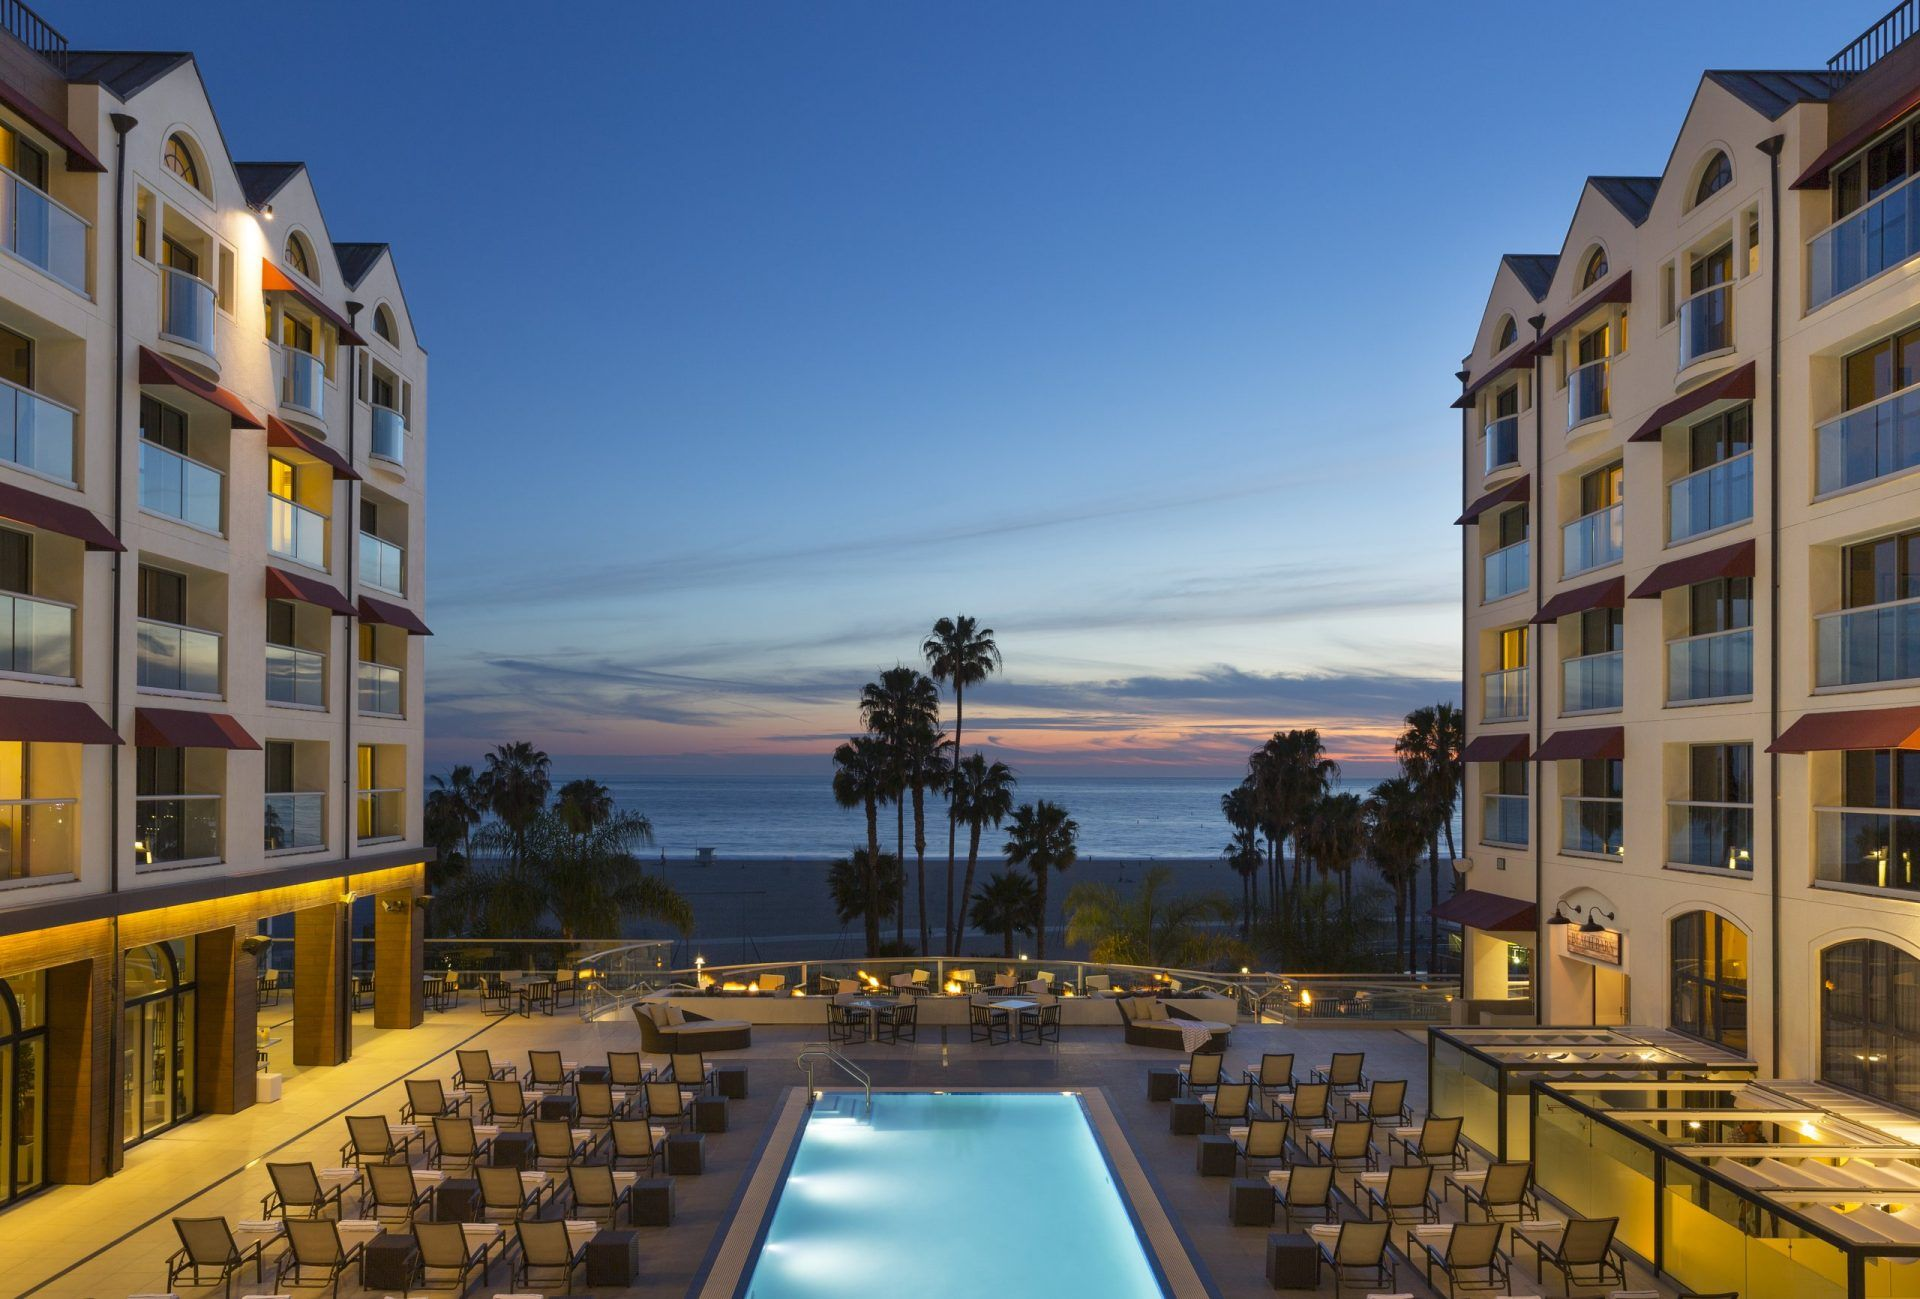 Read More About Allergy Friendly Hotels Like Loews Hotel In Our Los Angeles Allergy Friendly Tr Loews Santa Monica Beach Hotel Santa Monica Santa Monica Hotels